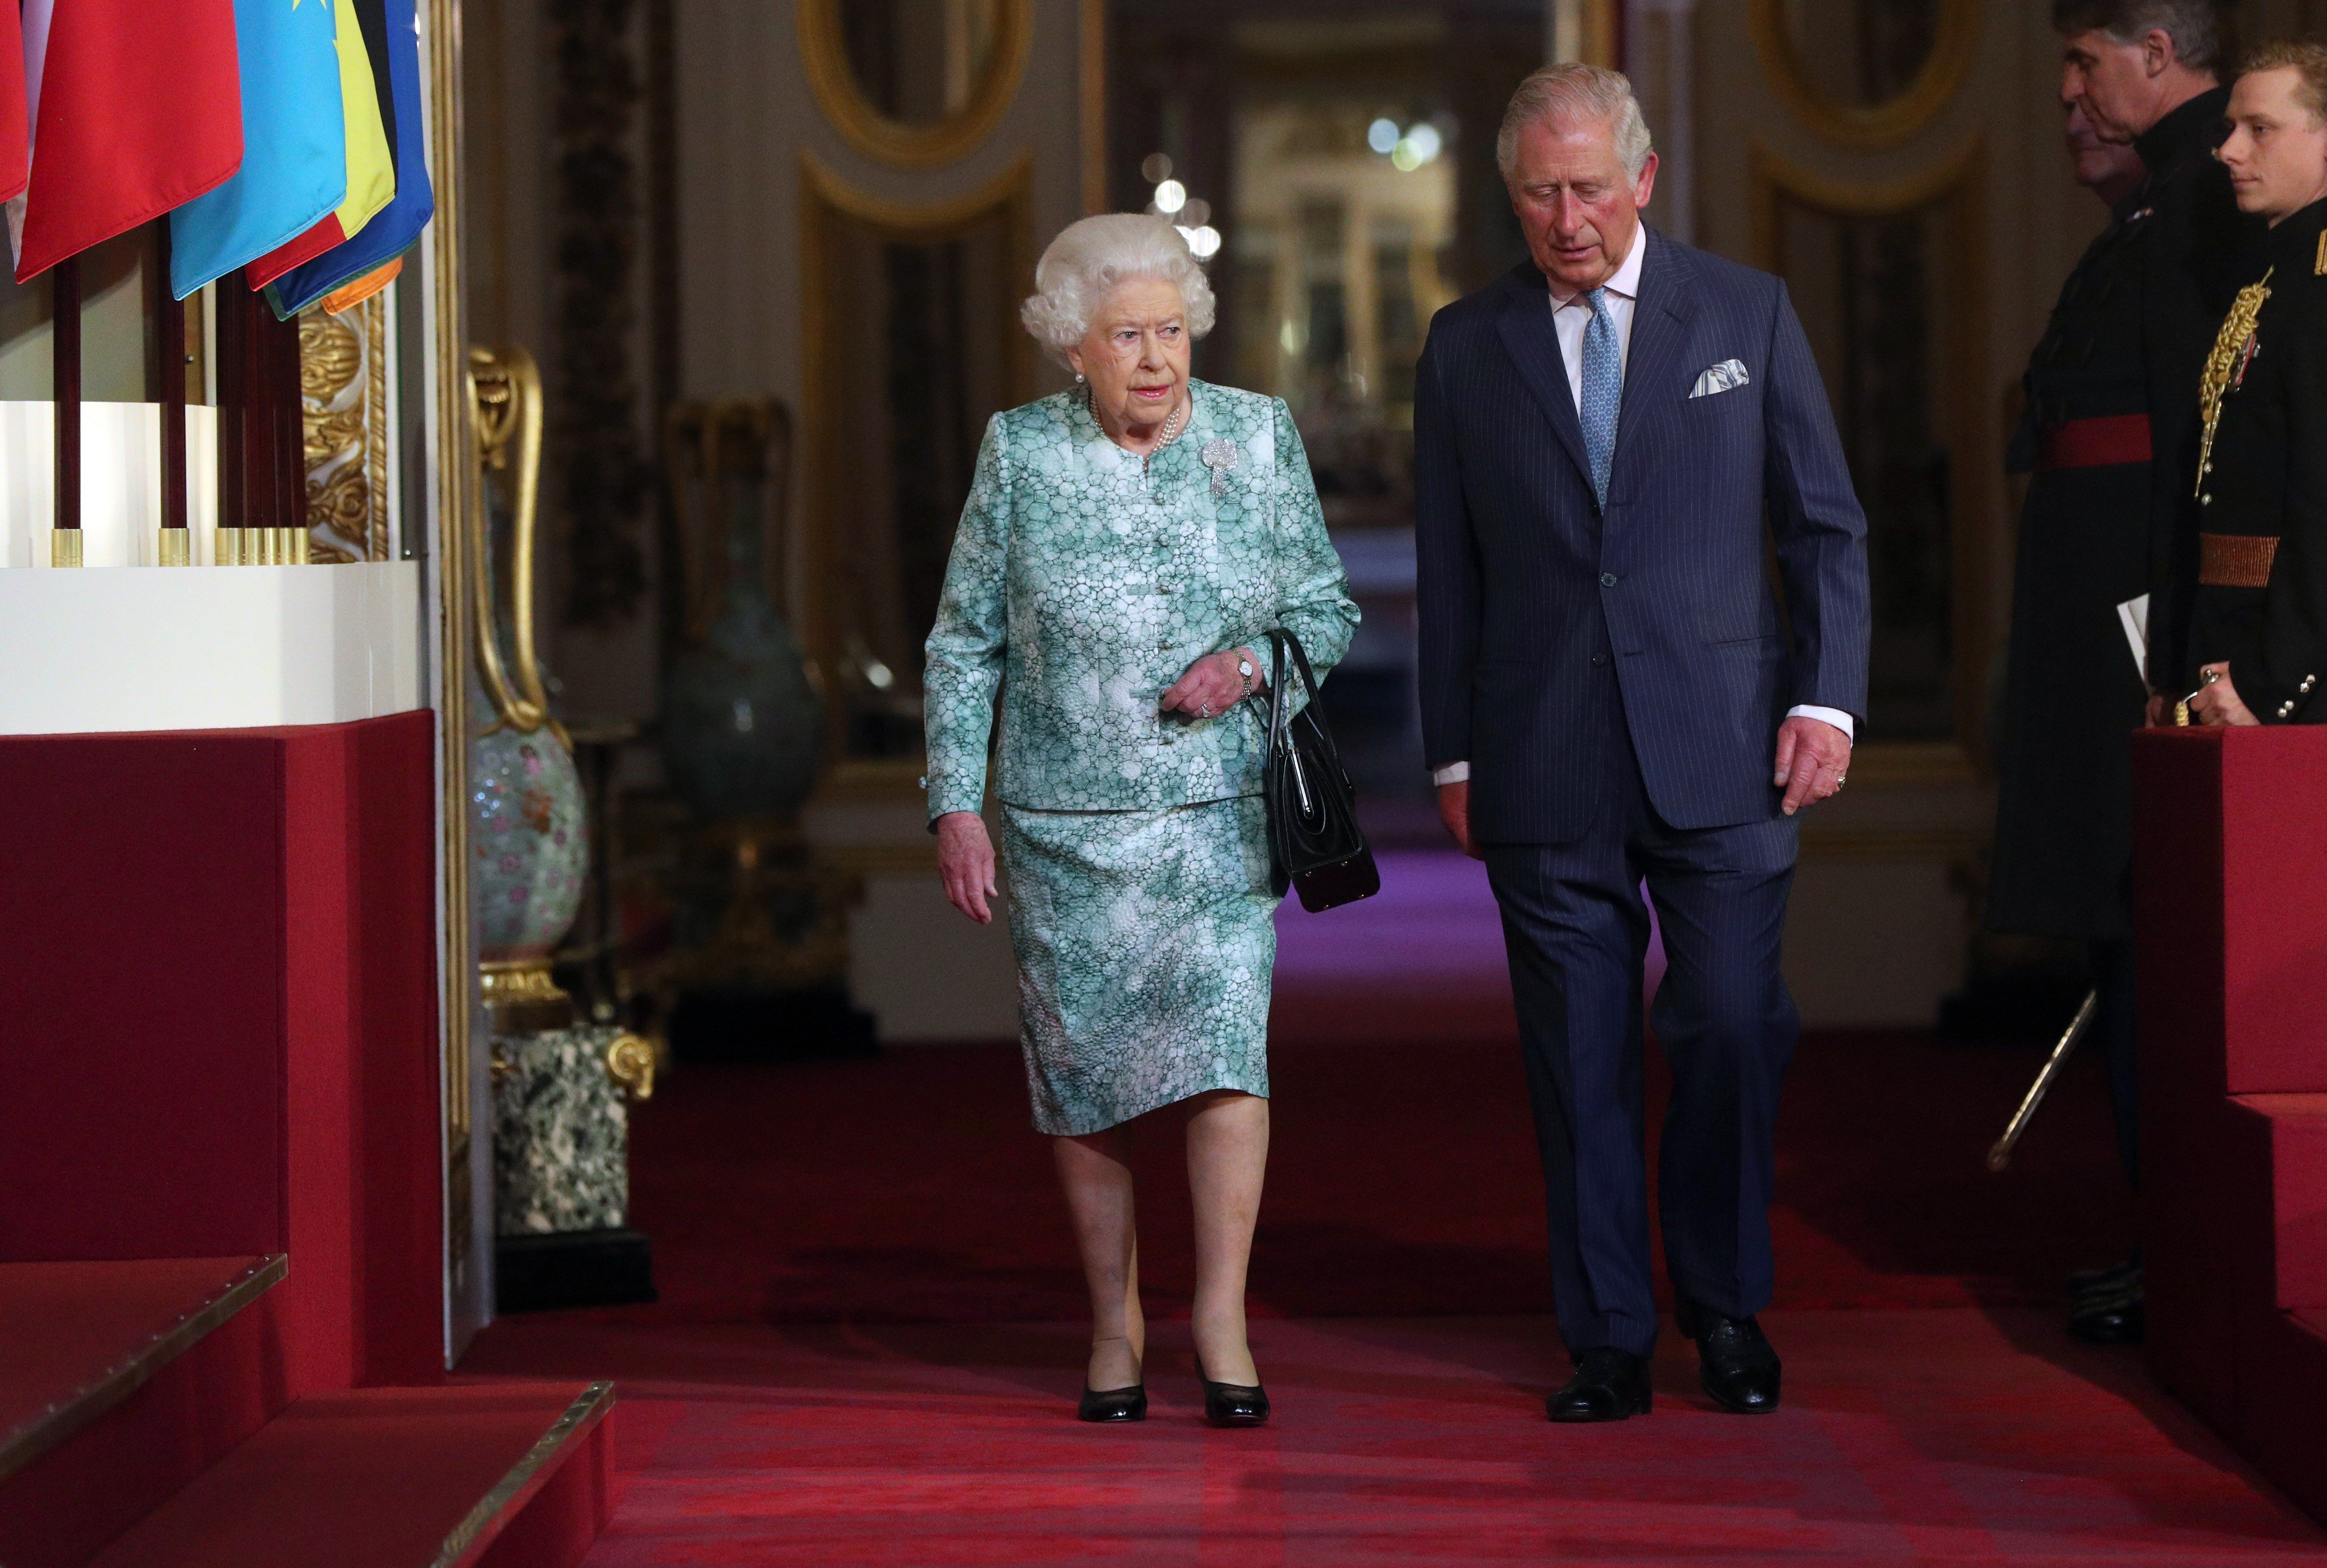 Prince Charles to become next Commonwealth head